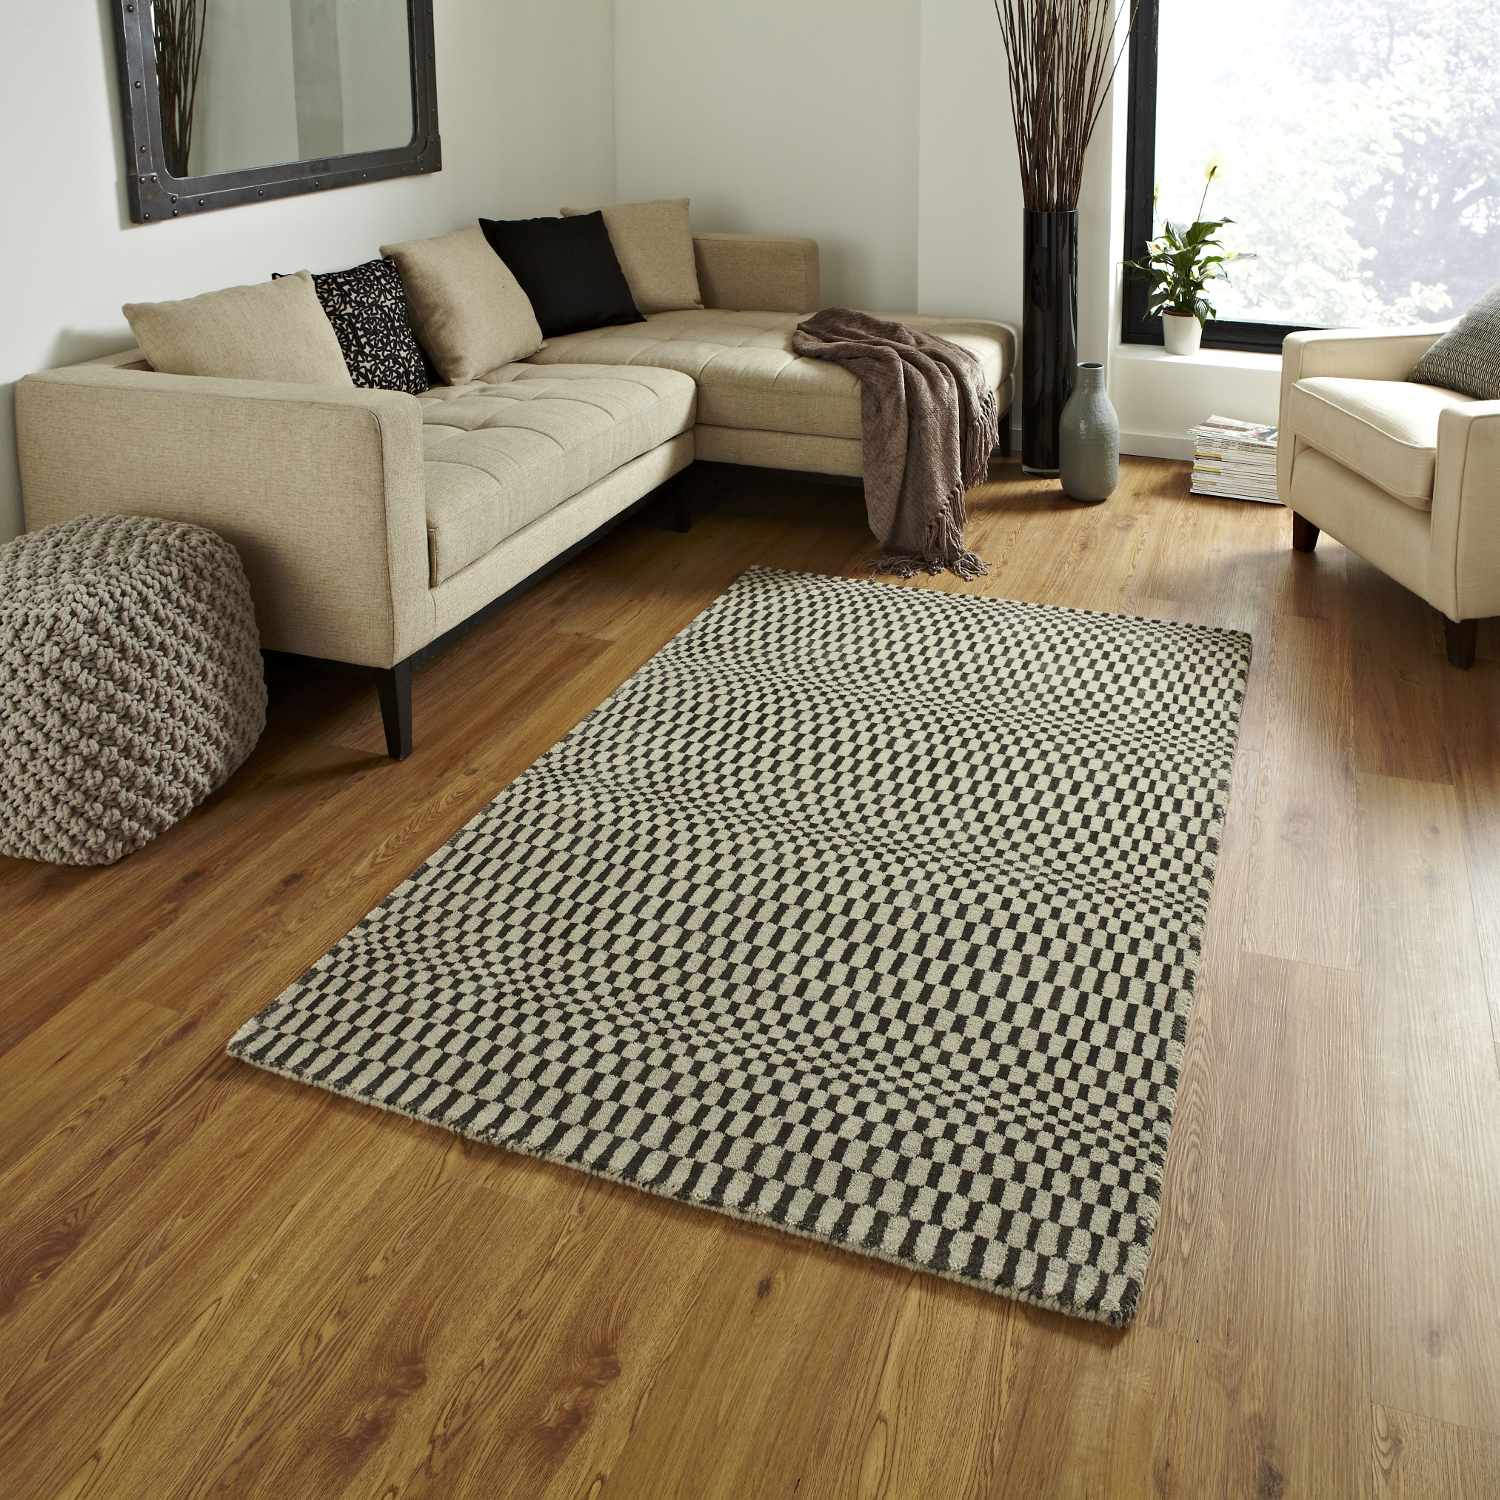 15 Best Collection Of Large Floor Rugs Area Rugs Ideas